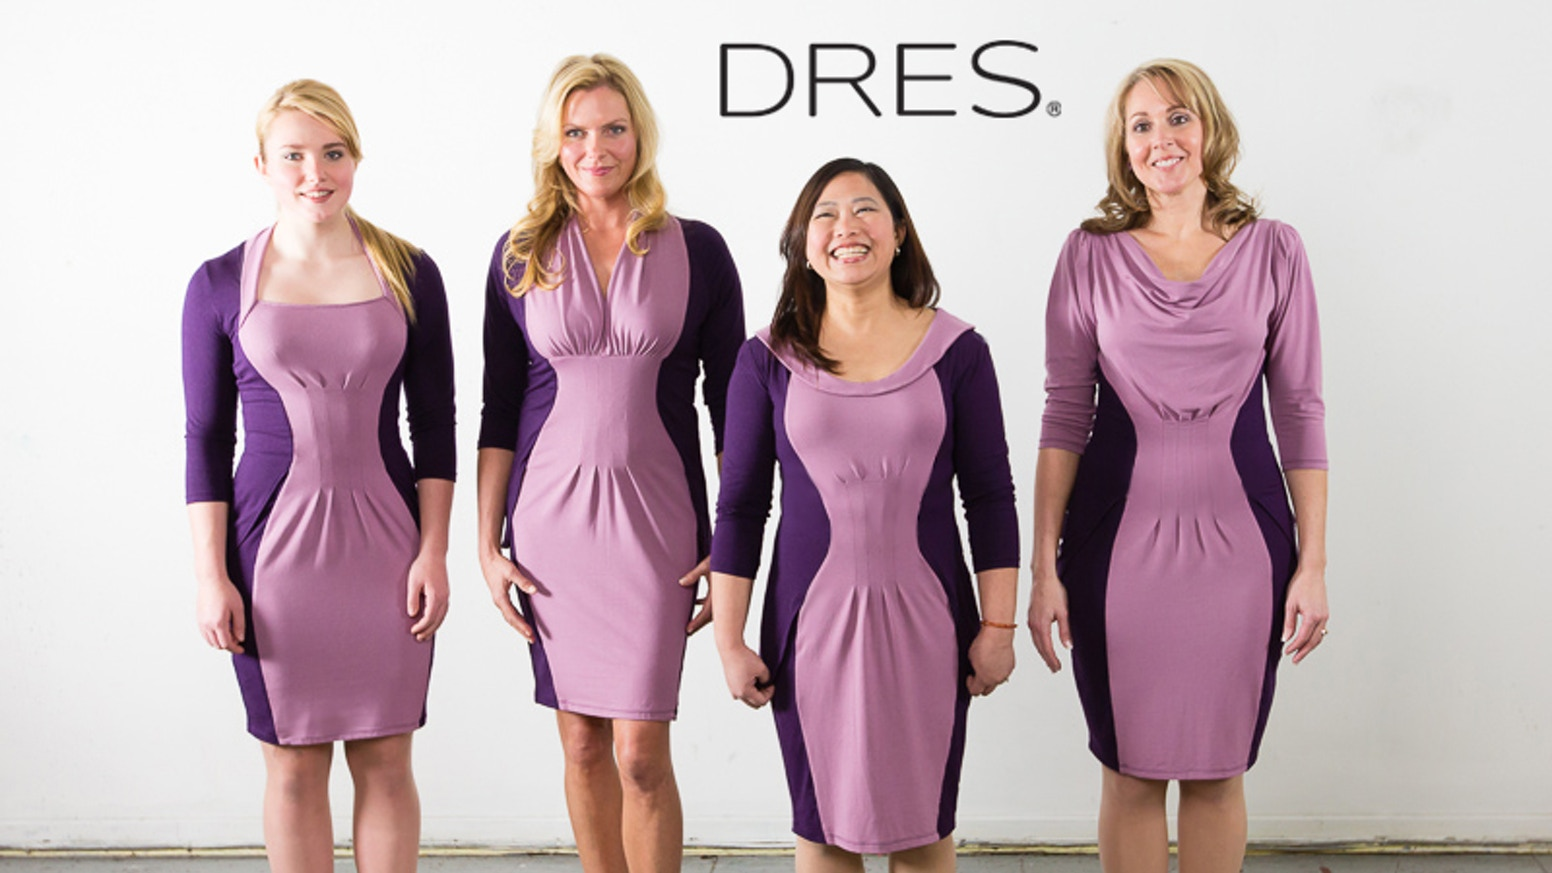 Women S Dresses Strategically Designed To Fit And Enhance Four Basic Body Shapes Made In The Usa With Organic Bamboo Fabric